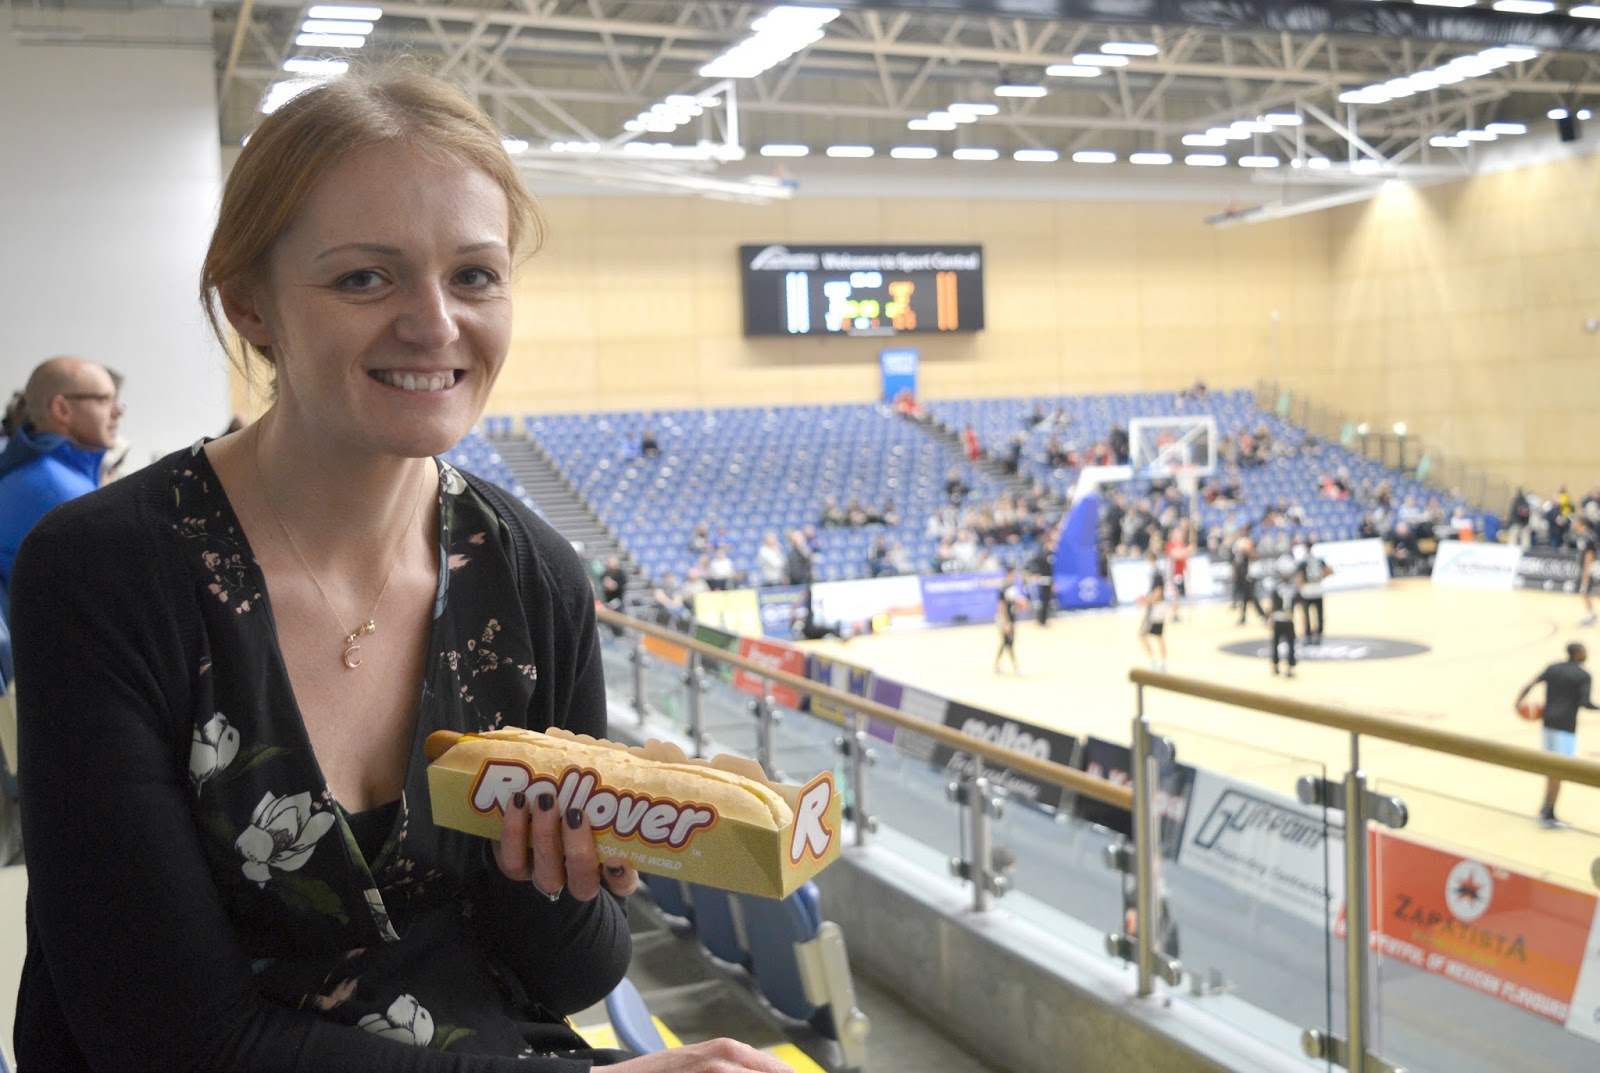 Newcastle Eagles Basketball Game - Hot Dog